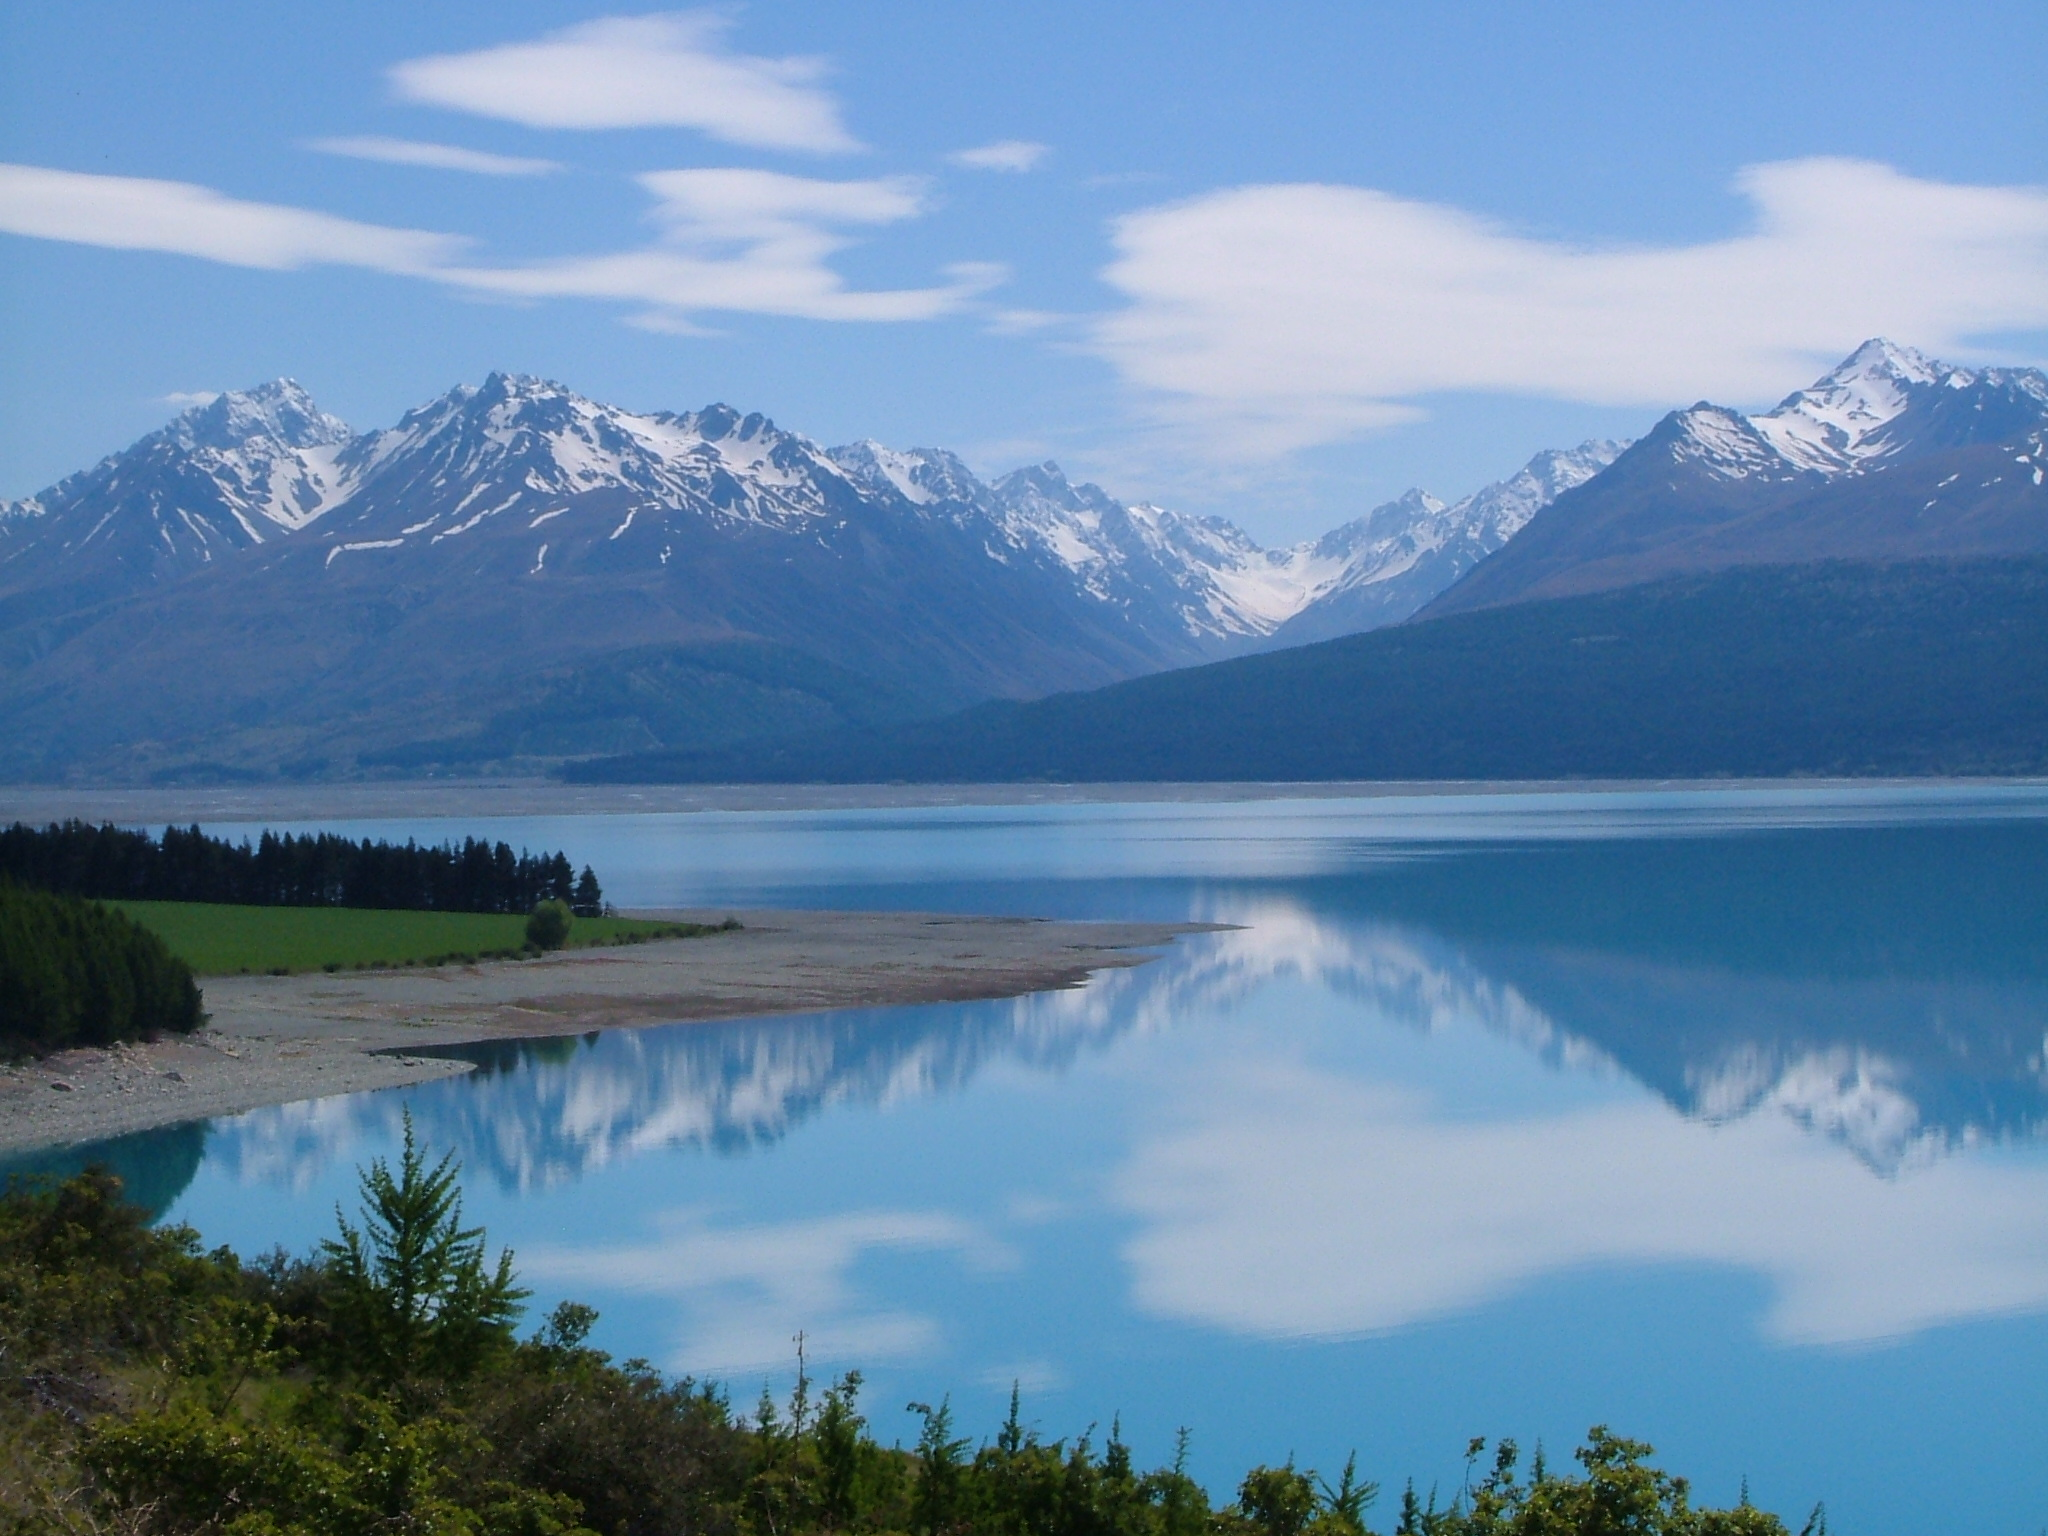 File:Tasman Valley - Aoraki Mount Cook - Canterbury